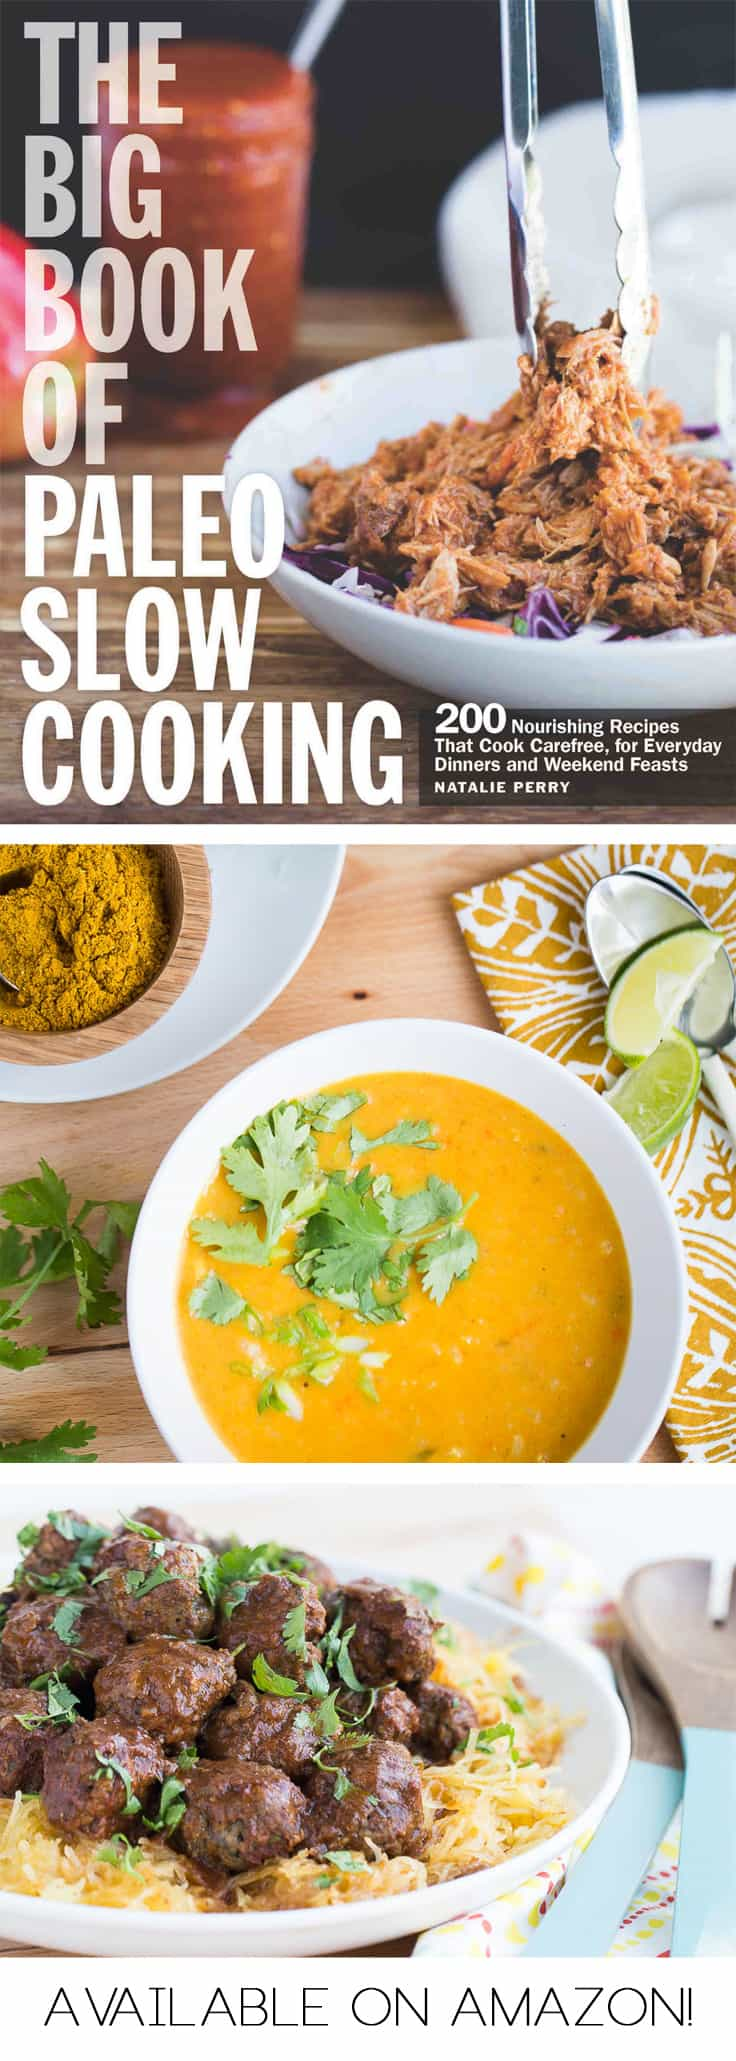 Sneak peeks of The Big Book of Paleo Slow Cooking! | Paleo recipes | Whole30 recipes | Crock Pot Recipes | menu planning | meal planning | perrysplate.com